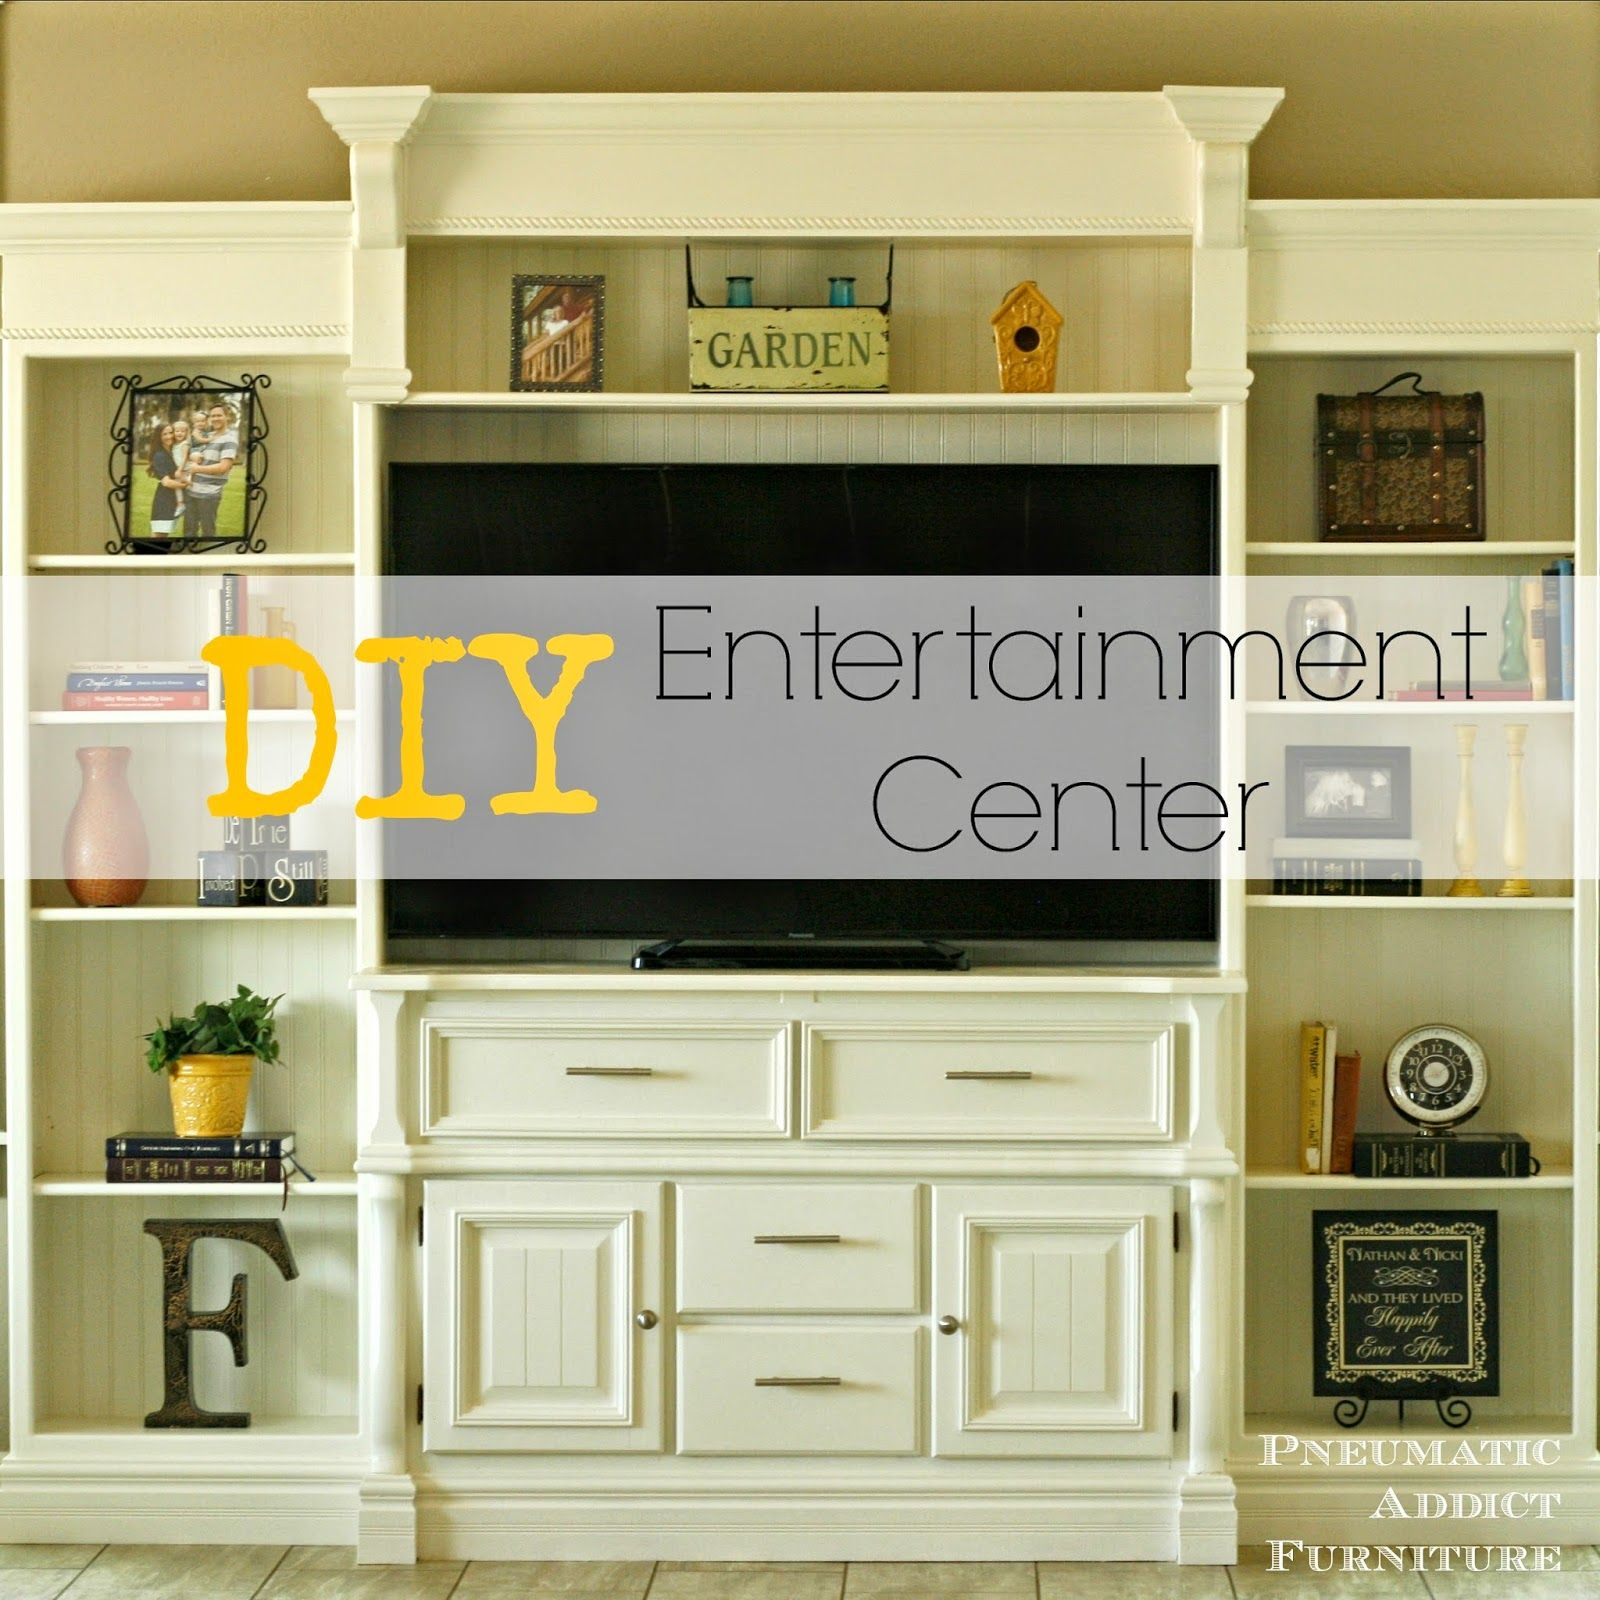 DIY And Furniture Blog, Offering In-depth Tutorials On